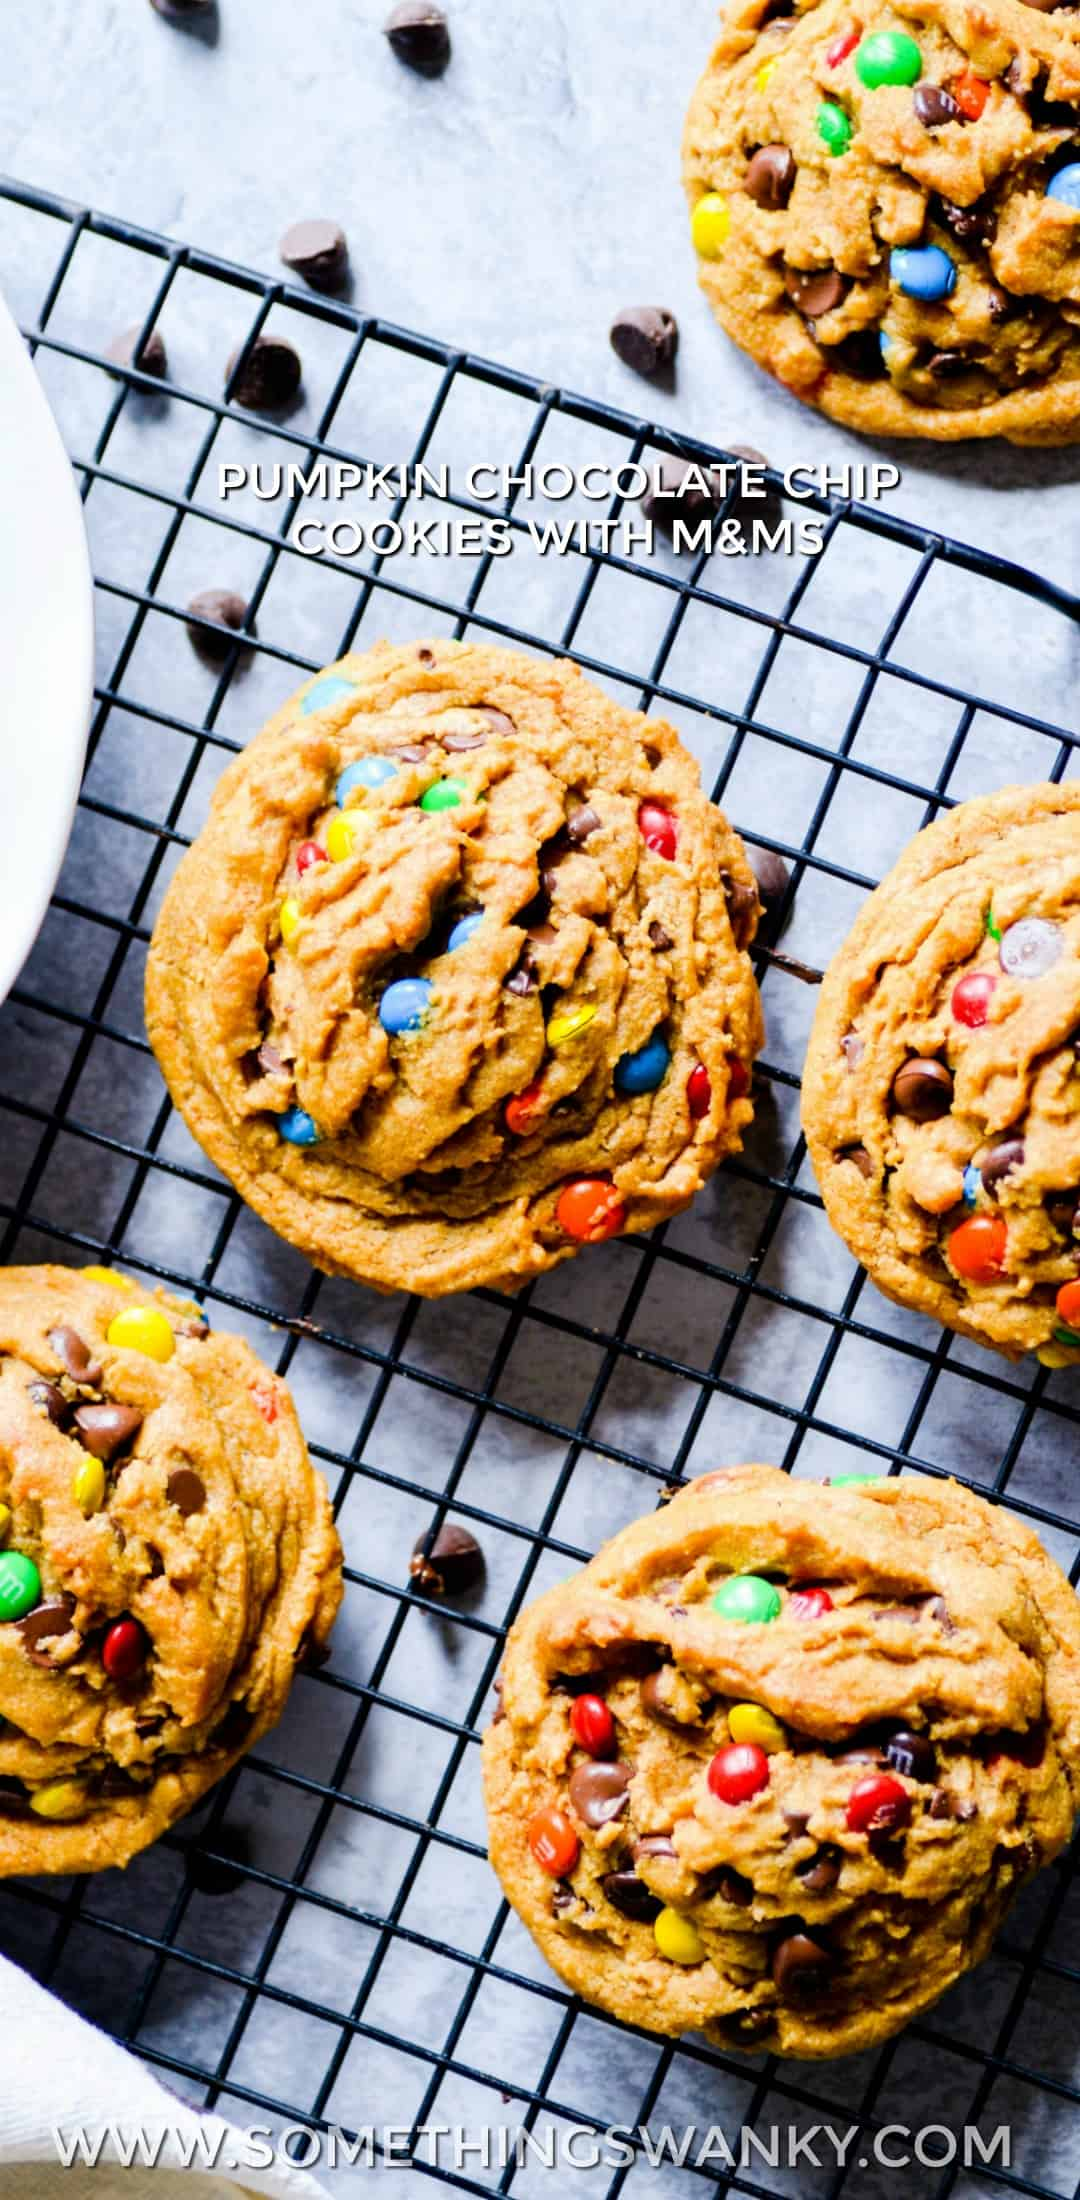 Pumpkin Chocolate Chip Cookies with M&MS